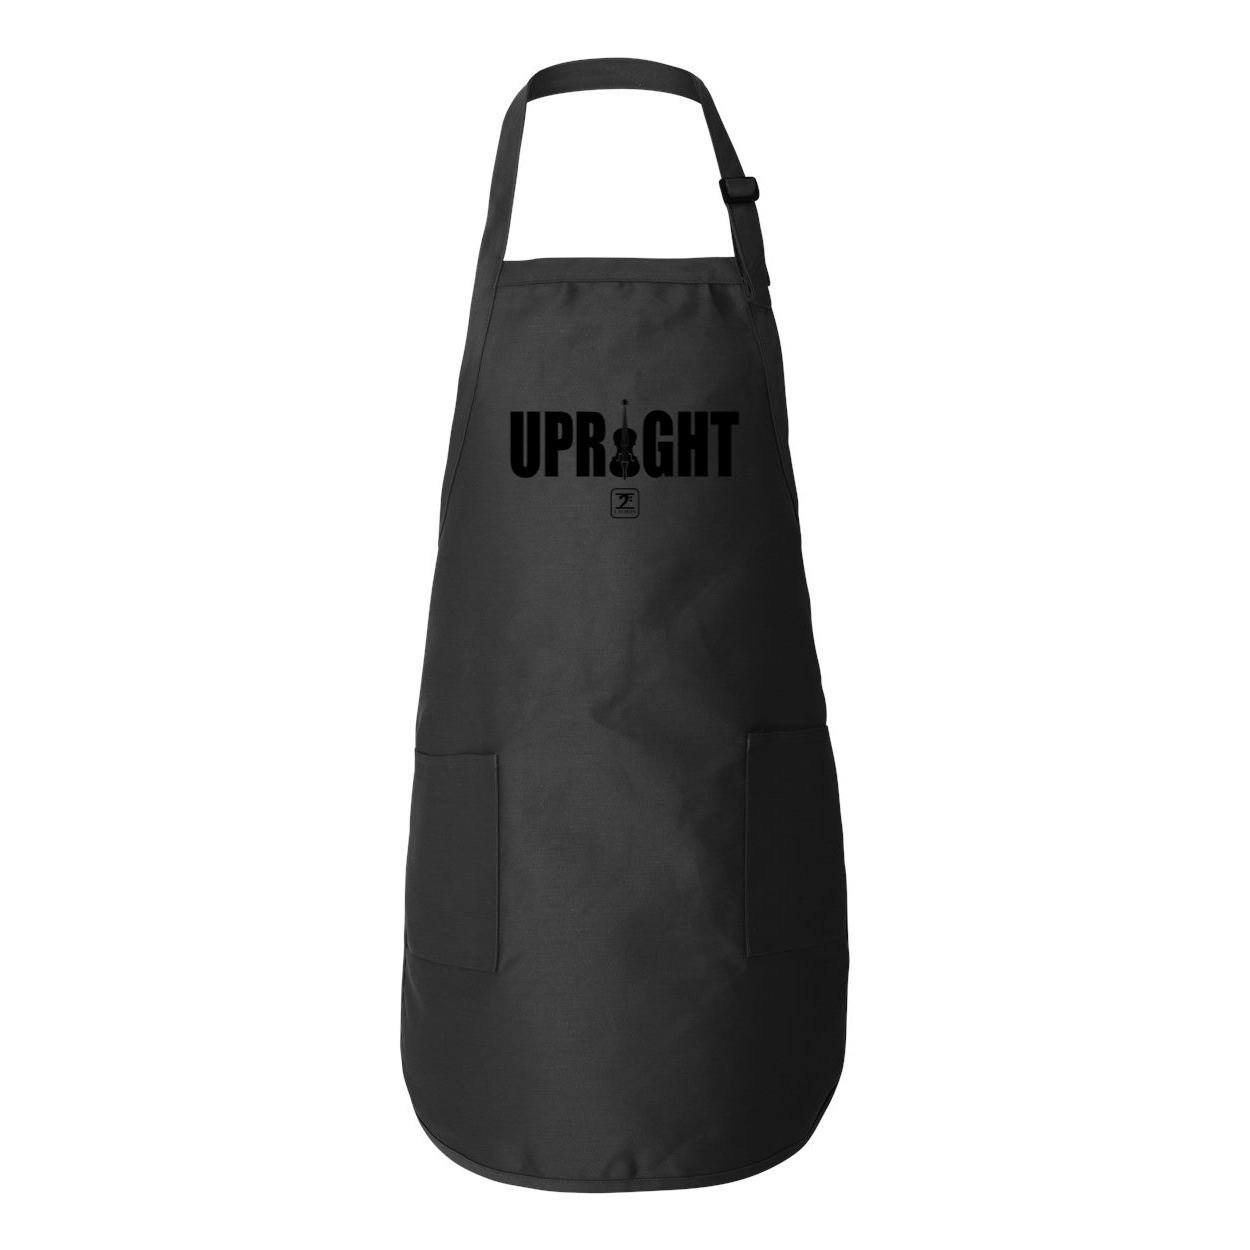 UPRIGHT Full-Length Apron with Pockets